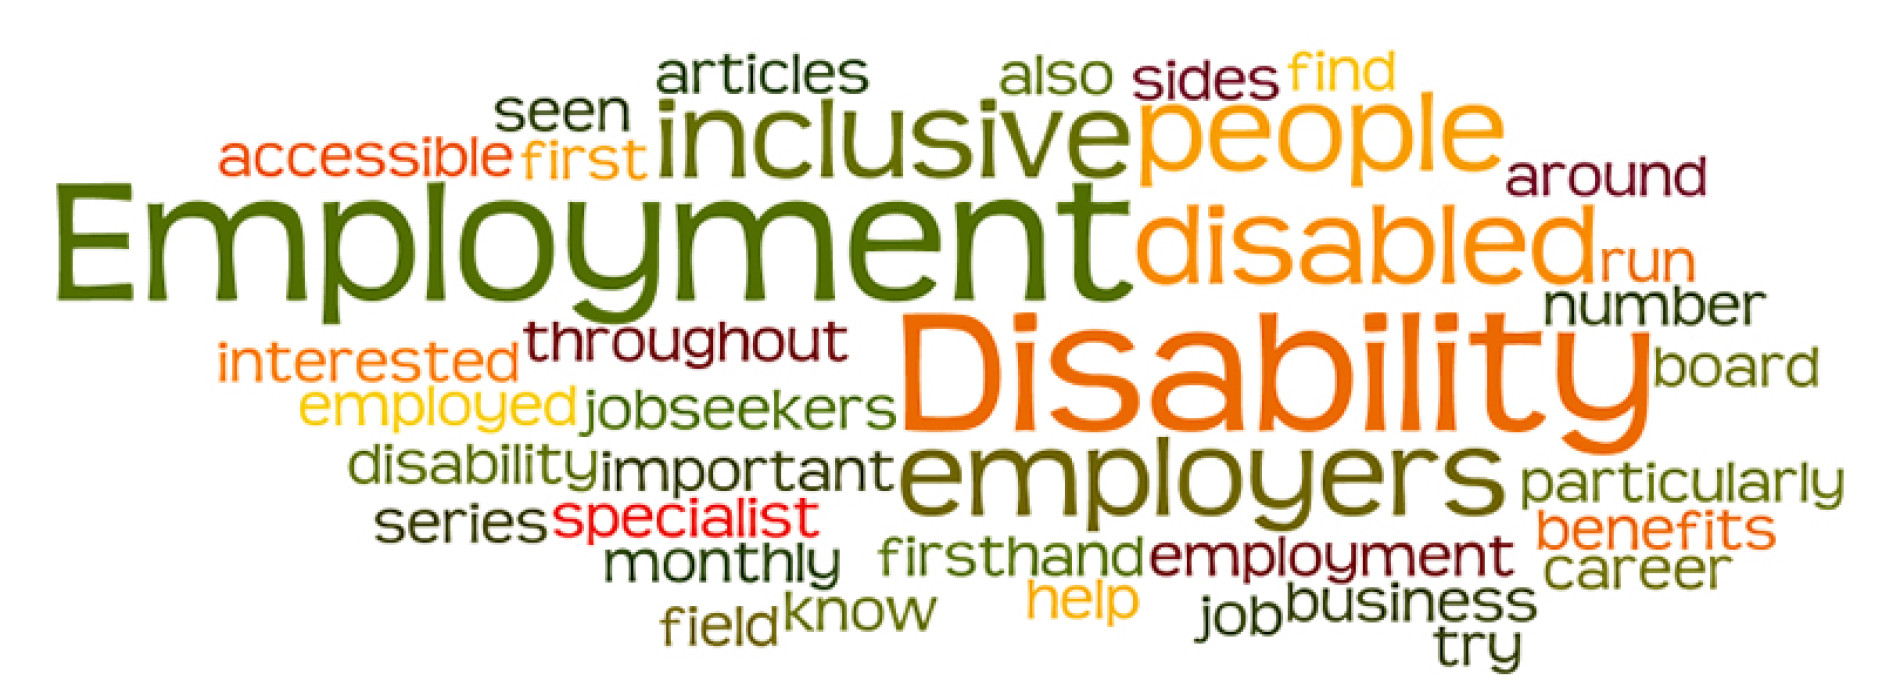 Making changes toward inclusive employment for disabled people